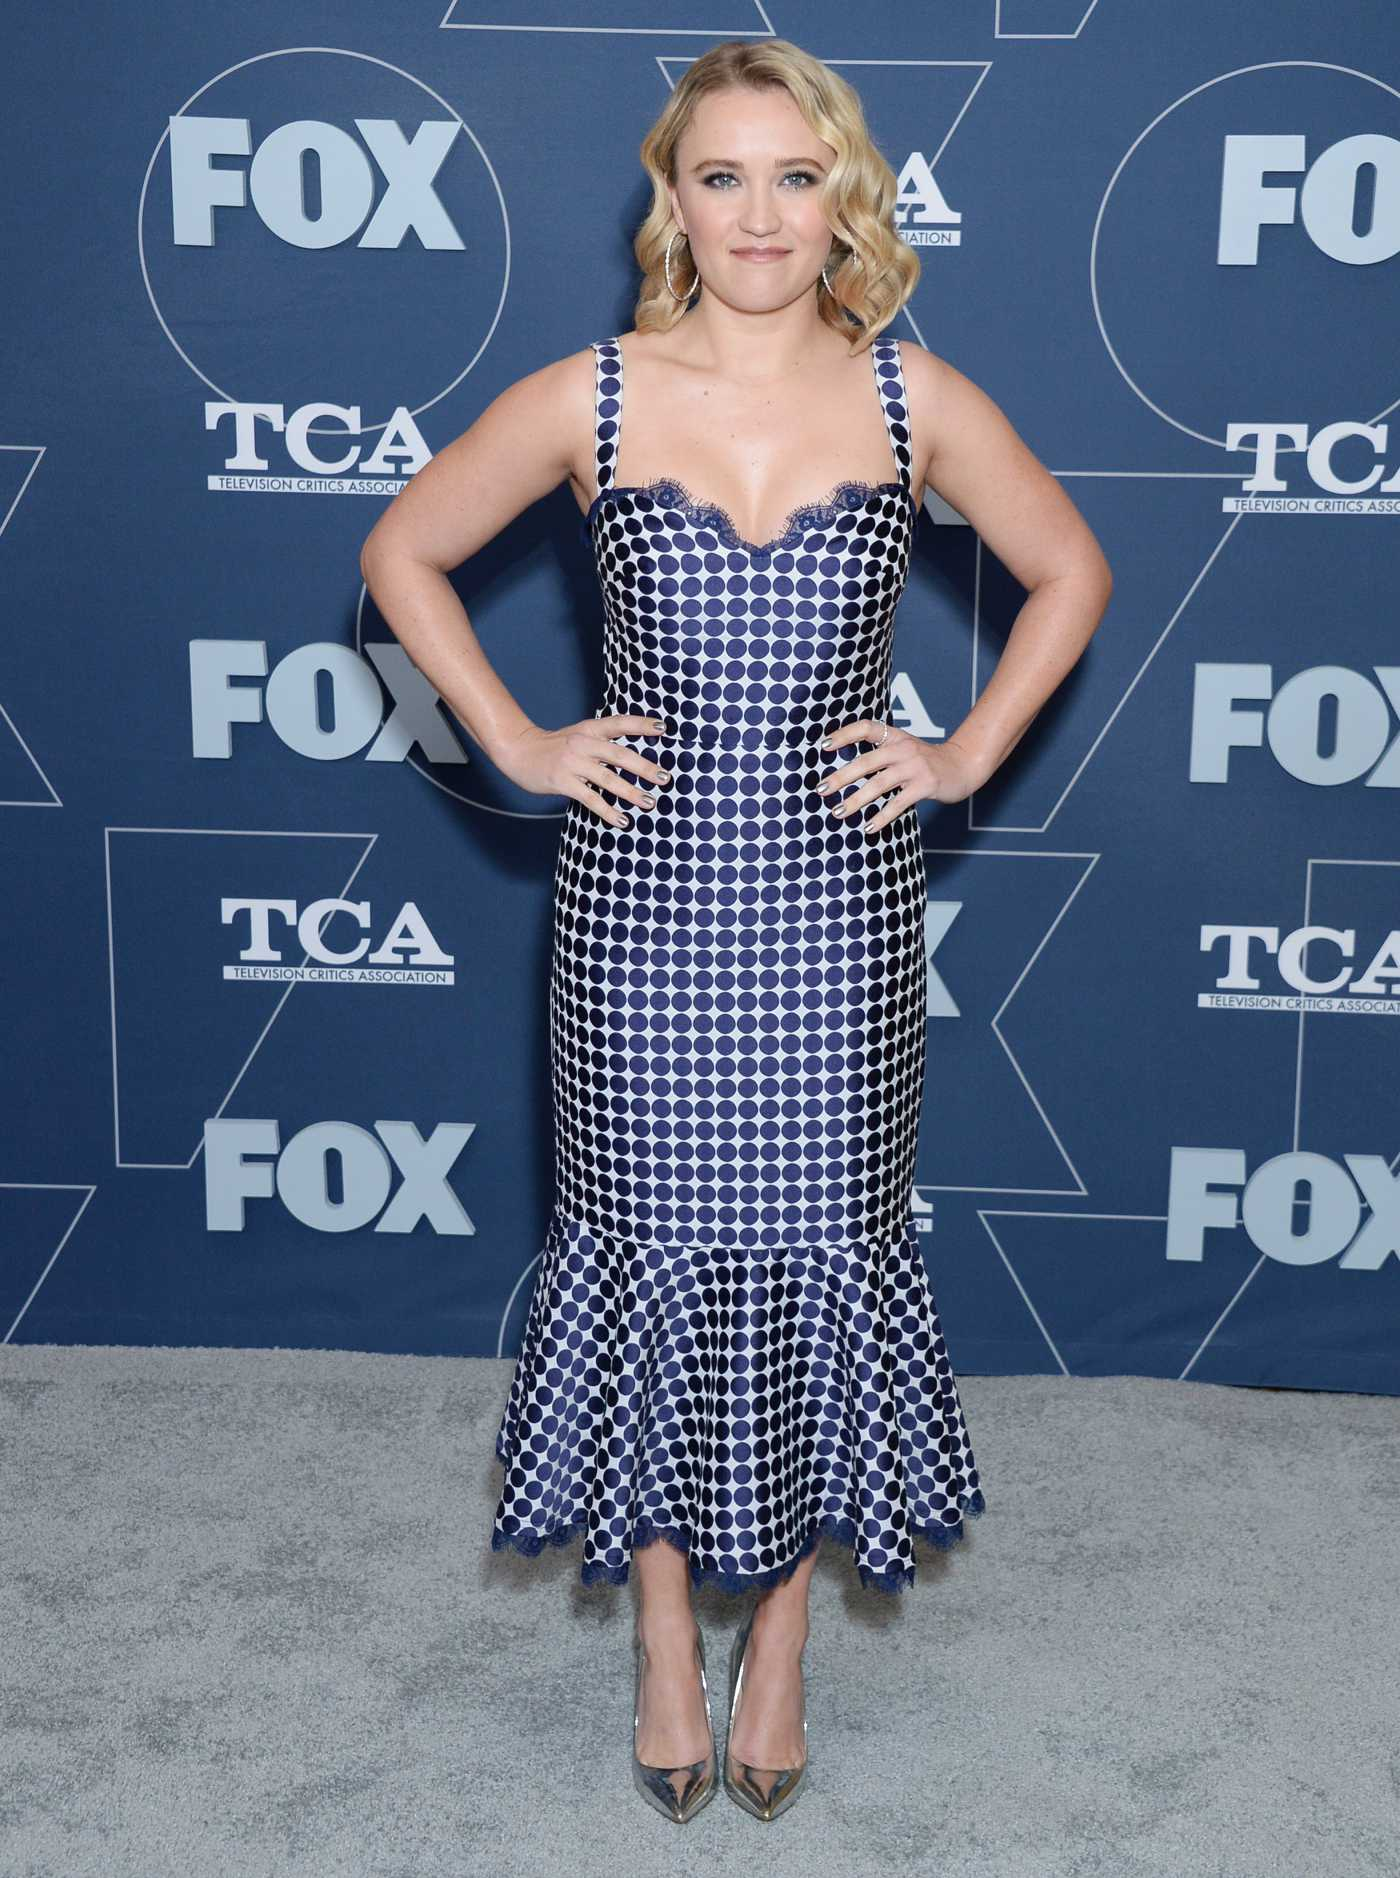 Emily Osment Attends 2020 Fox TCA Winter Press Tour All-Star Party in Pasadena 01/07/2020